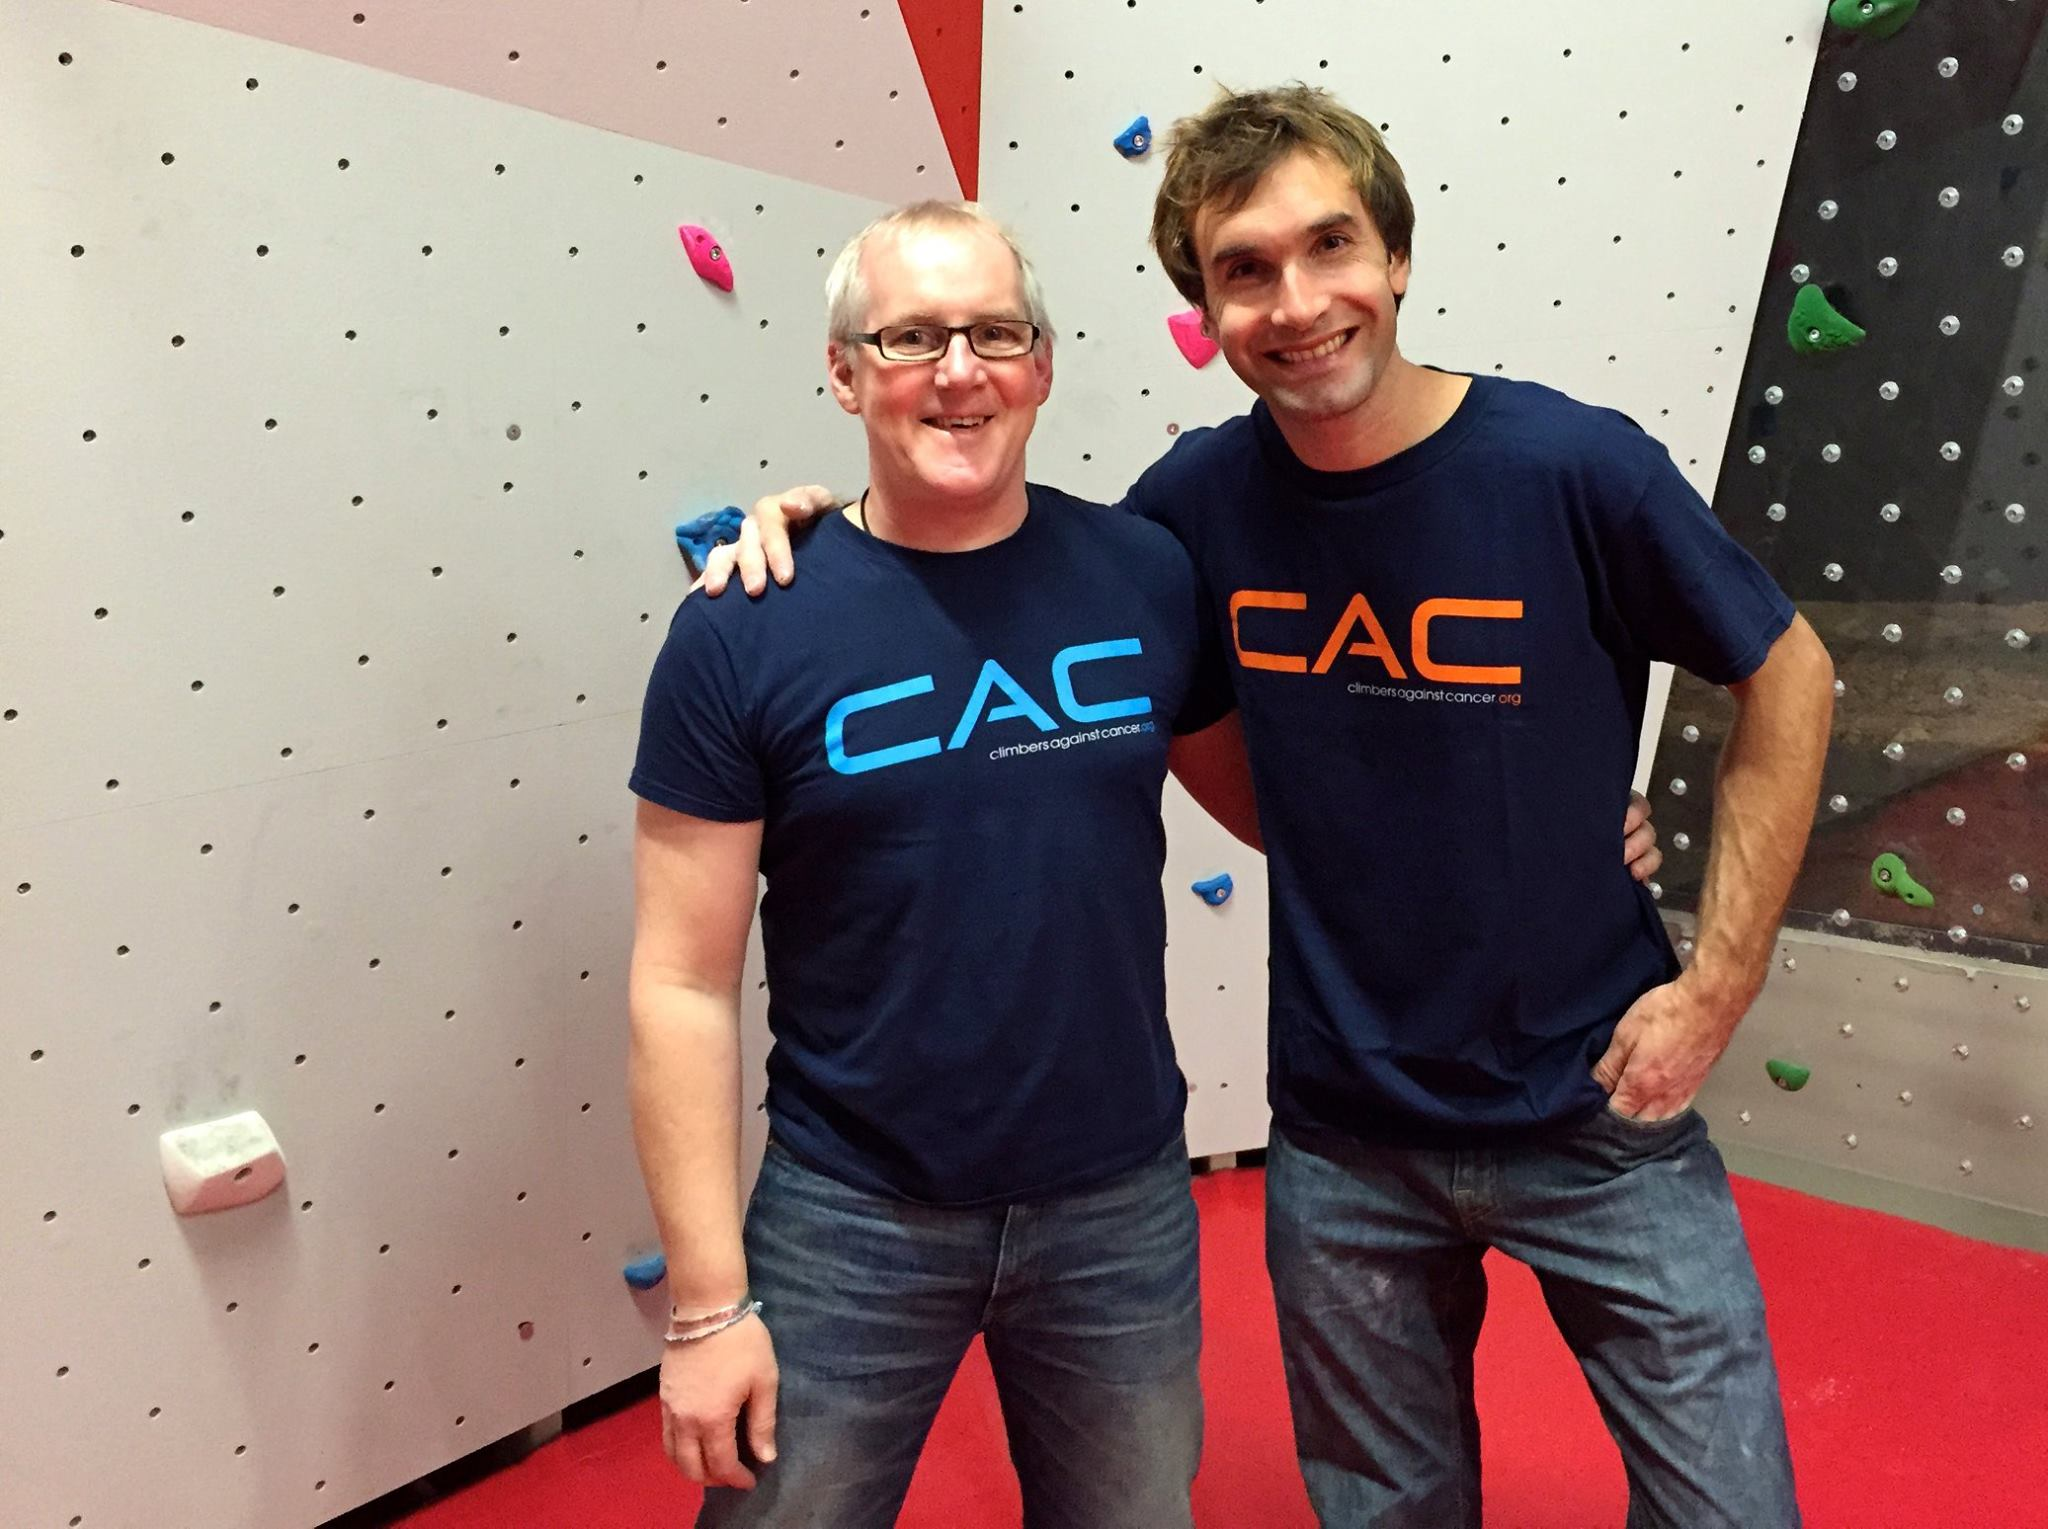 John Ellison (left) with Chris Sharma sporting CAC T-shirts. [Facebook photo]